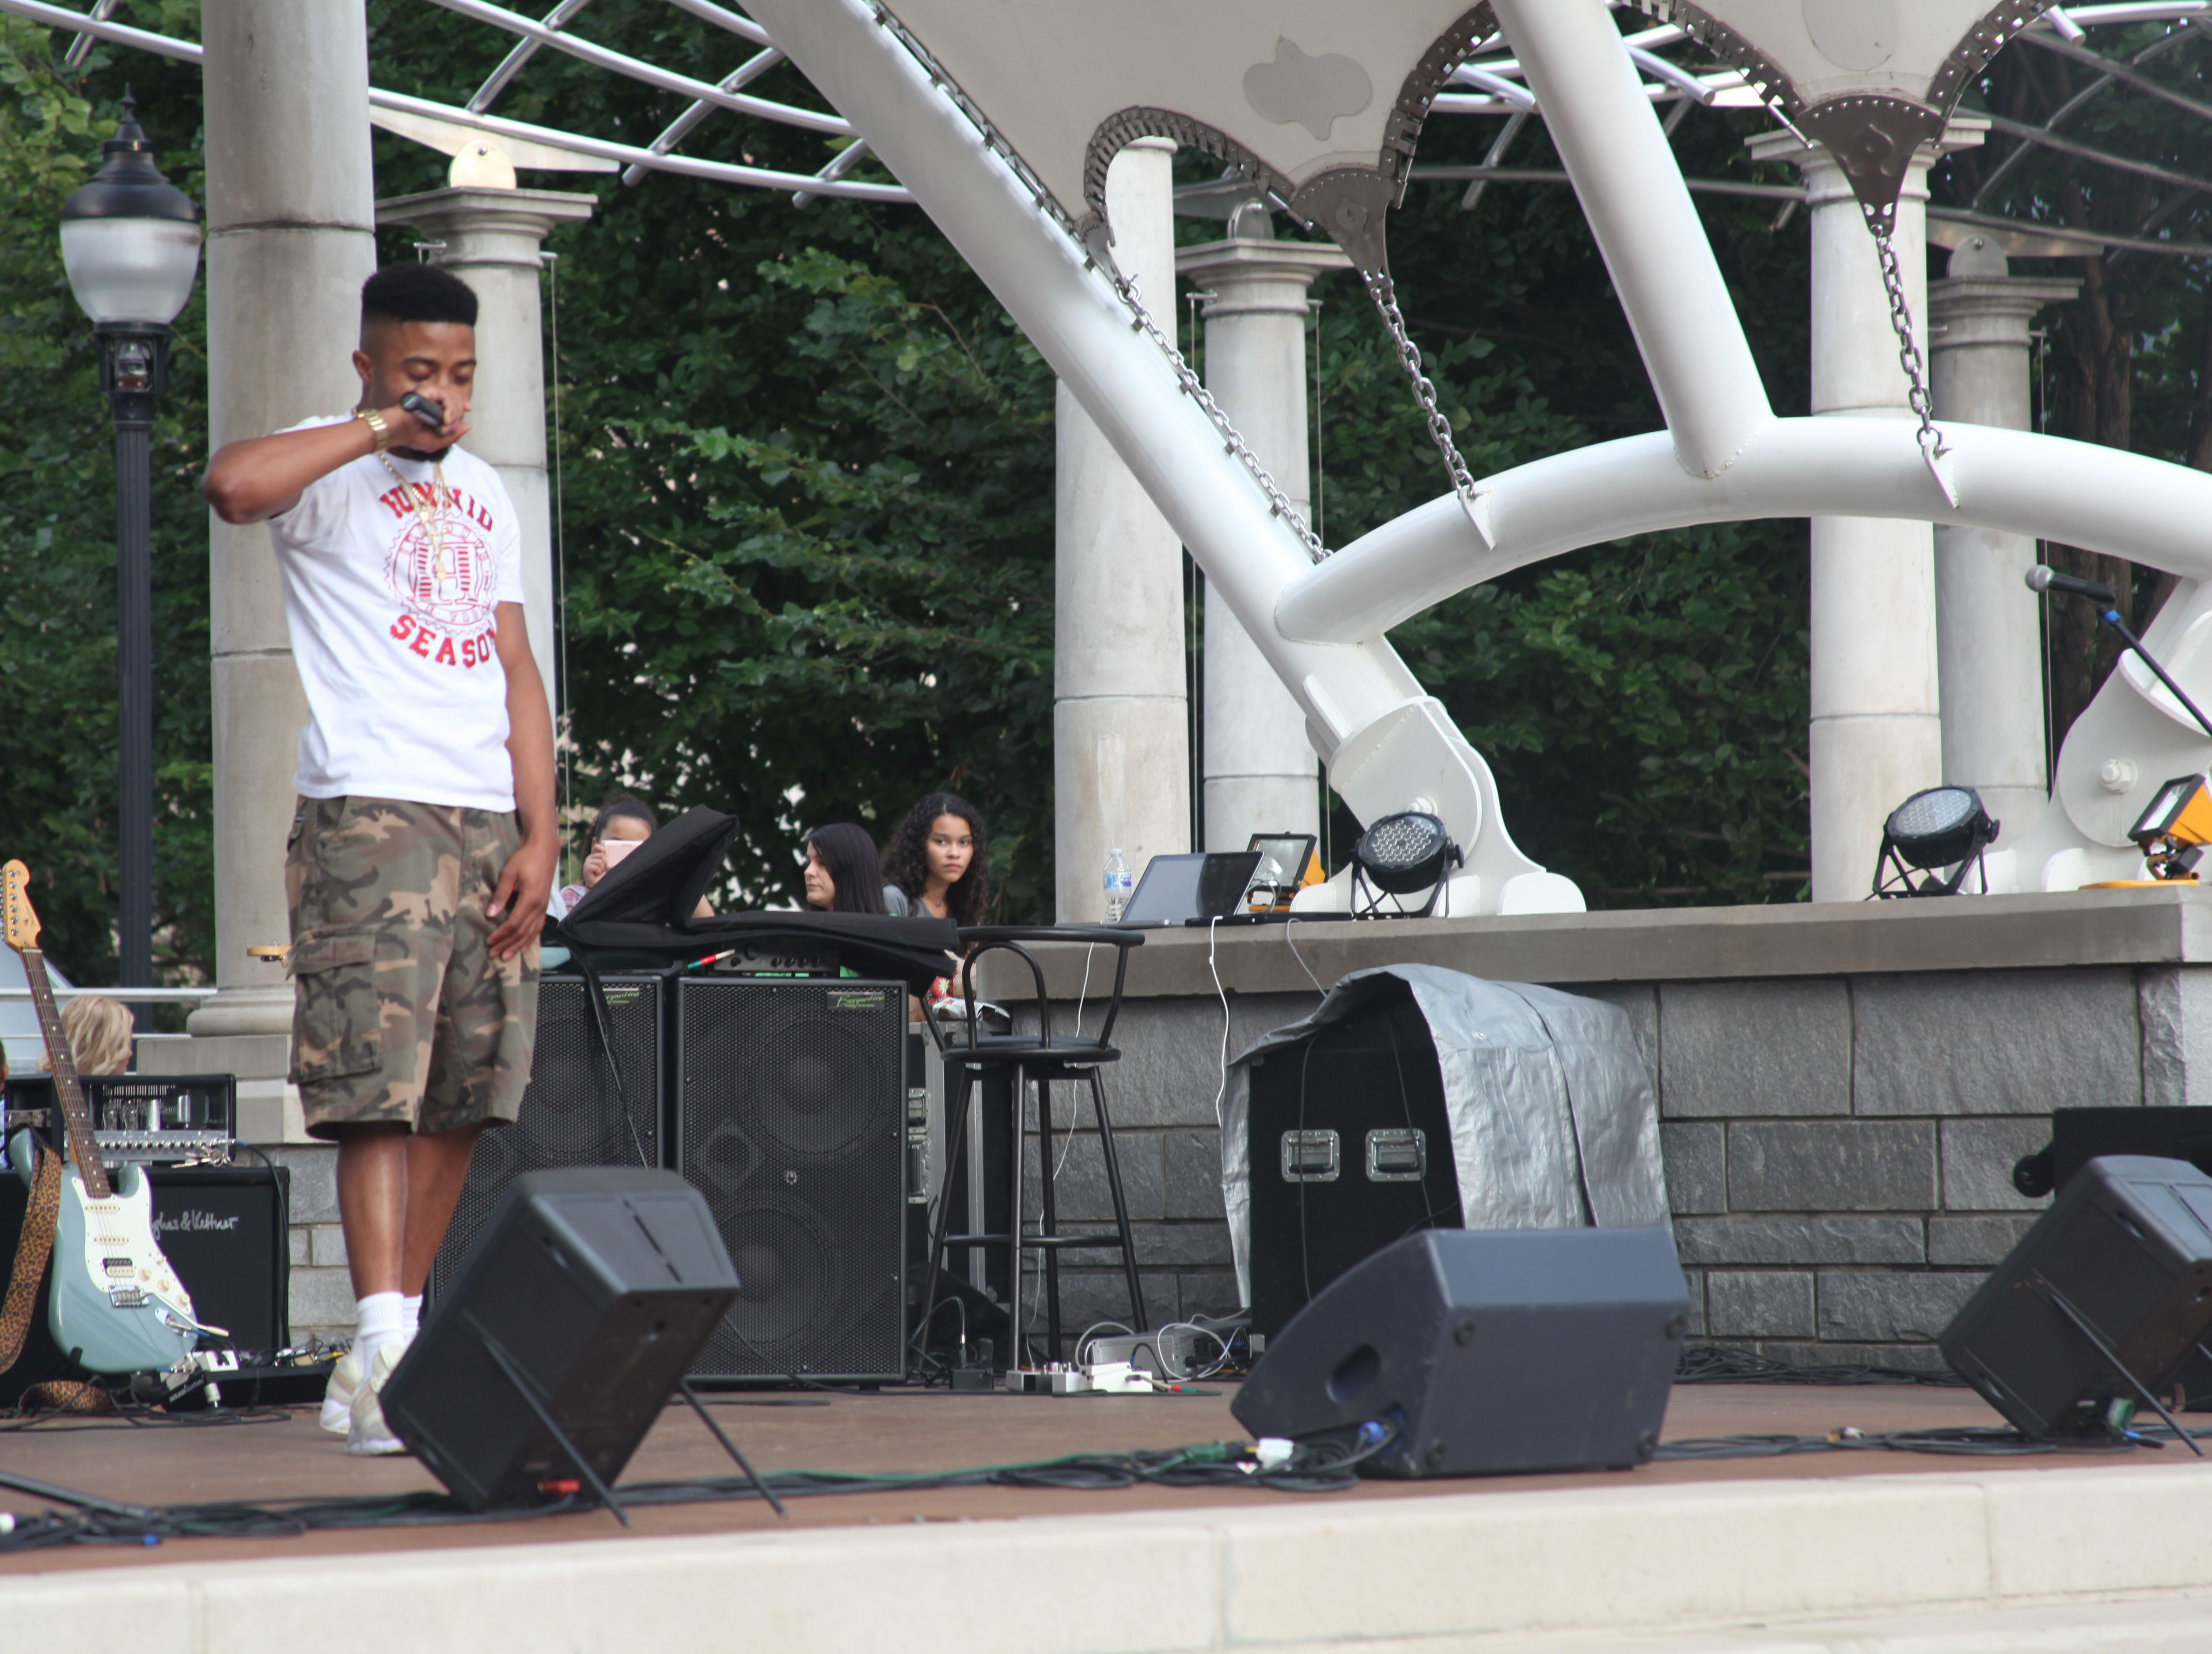 Teyg performs at the 2018 Goombay Festival at the Roger McGuire Green in Pack Square Park on Sept. 8, 2018.